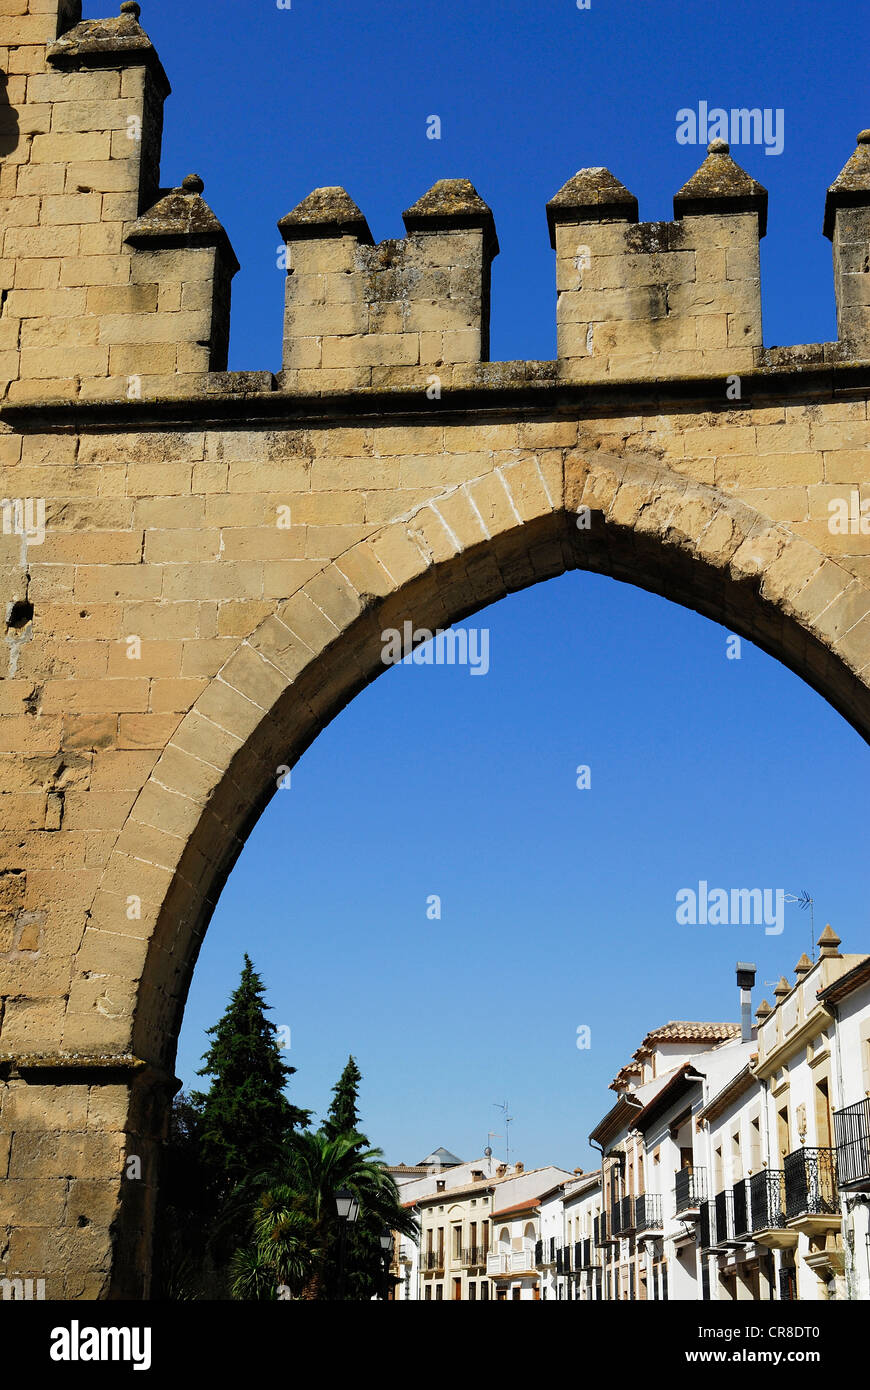 Spain, Andalusia, province of Jaen, Baeza, city UNESCO World Heritage, Villalar Arch built in 1521 - Stock Image